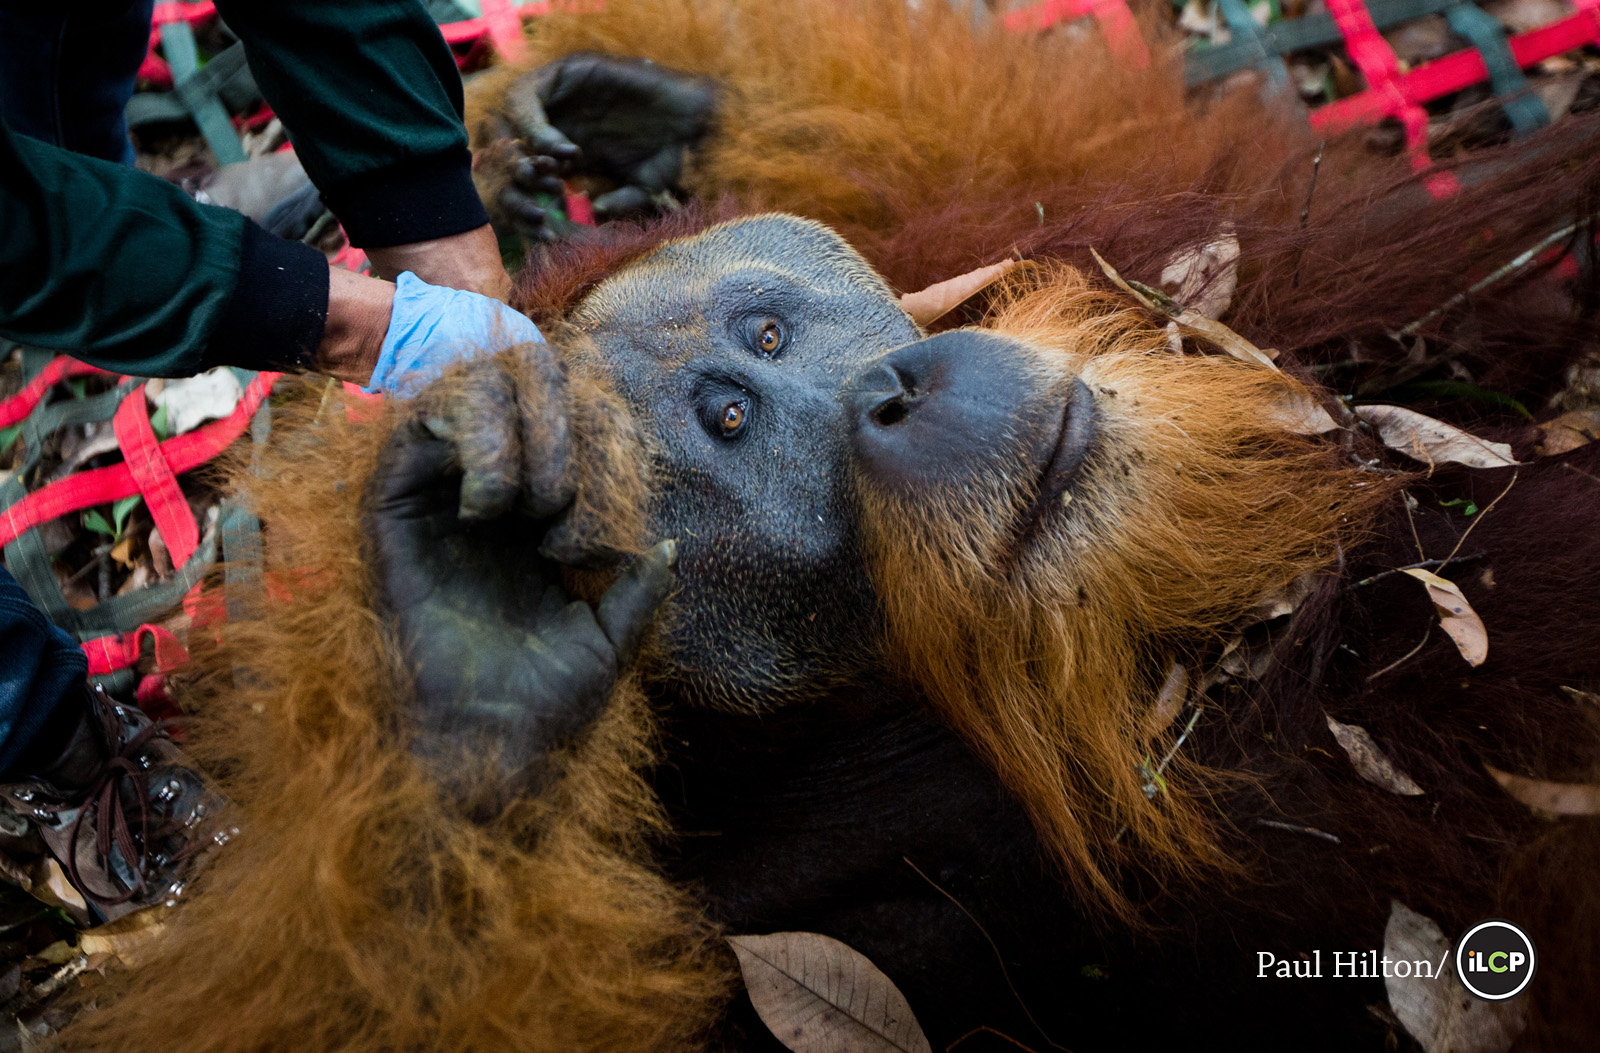 Sumatran Orangutan,  Pongo abelii , photographed by Paul Hilton. 69% of Orangutan habitat and half the population has been lost in one generation; Sumatran Orangutans will be extinct in the wild within the next 10 years if current levels of deforestation continue.